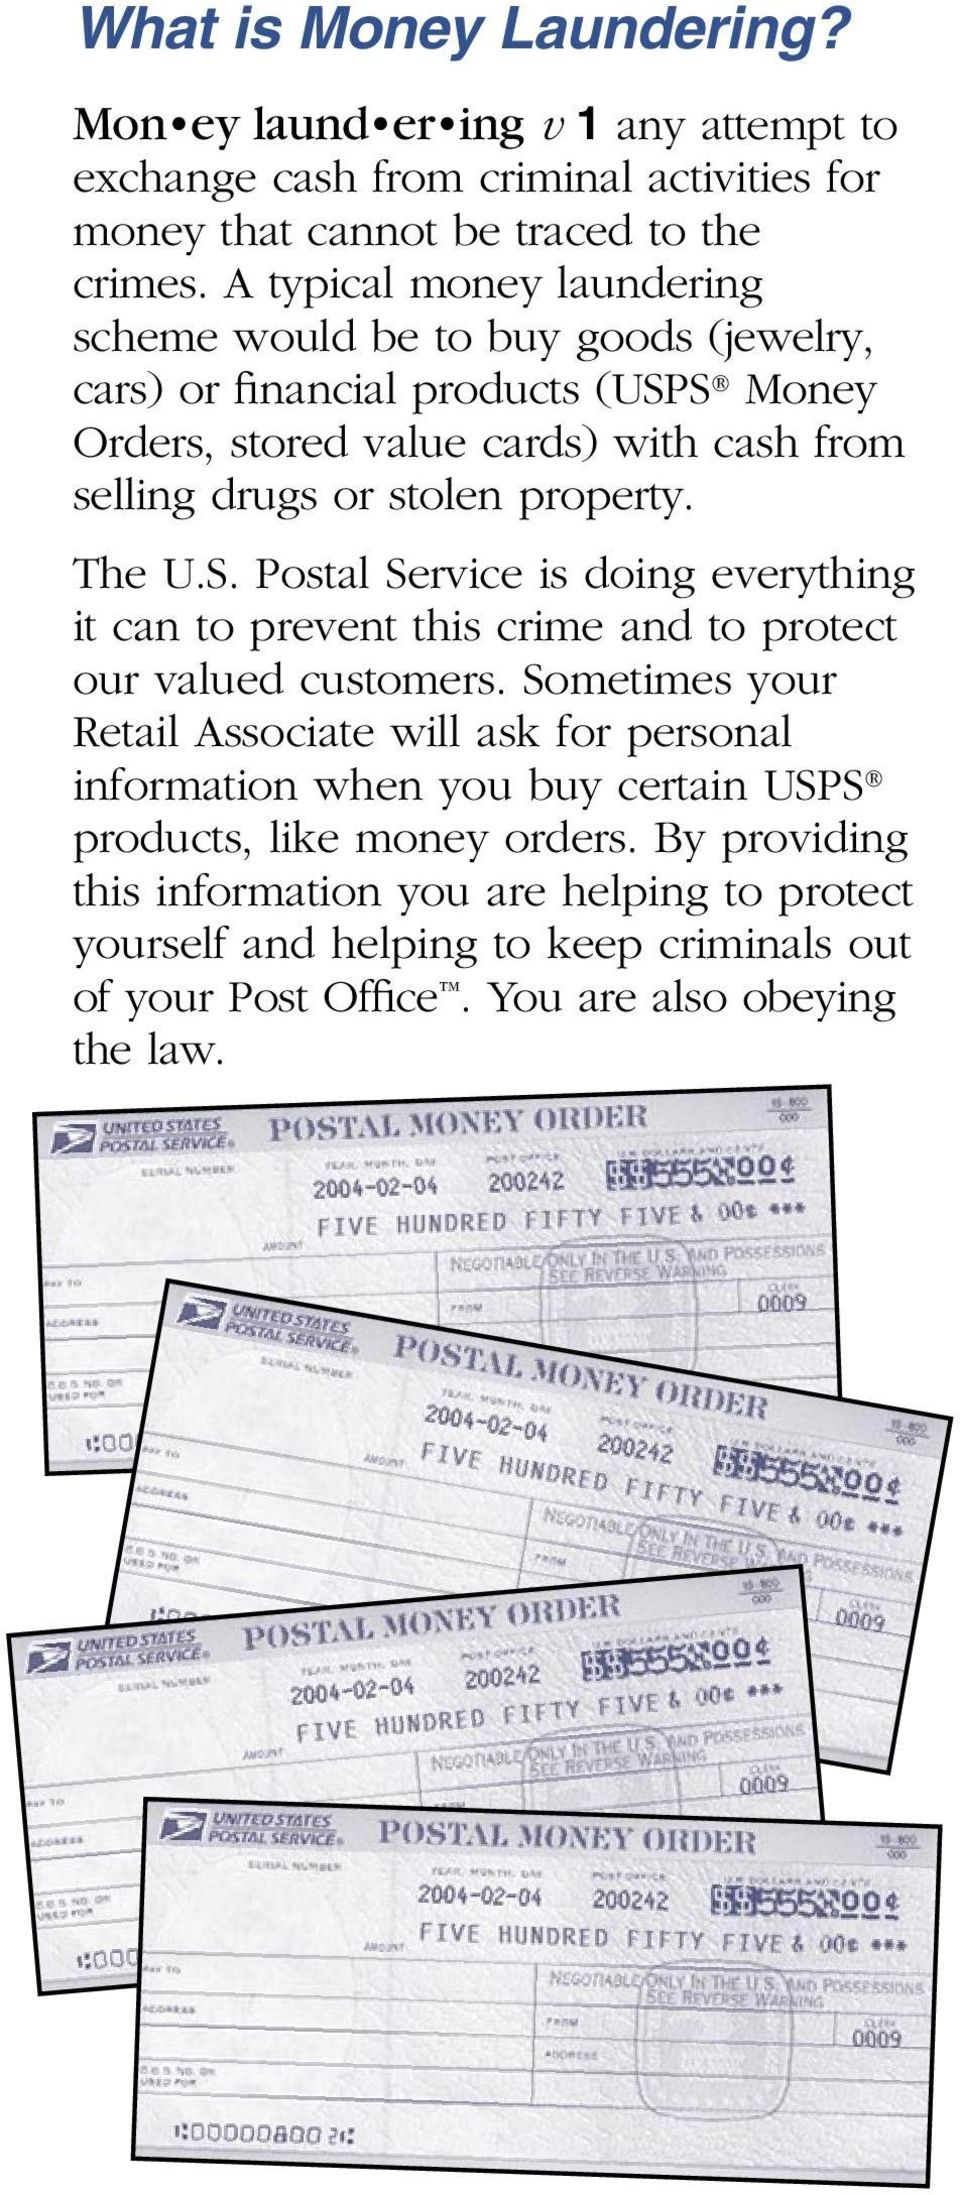 property. The U.S. Postal Service is doing everything it can to prevent this crime and to protect our valued customers.